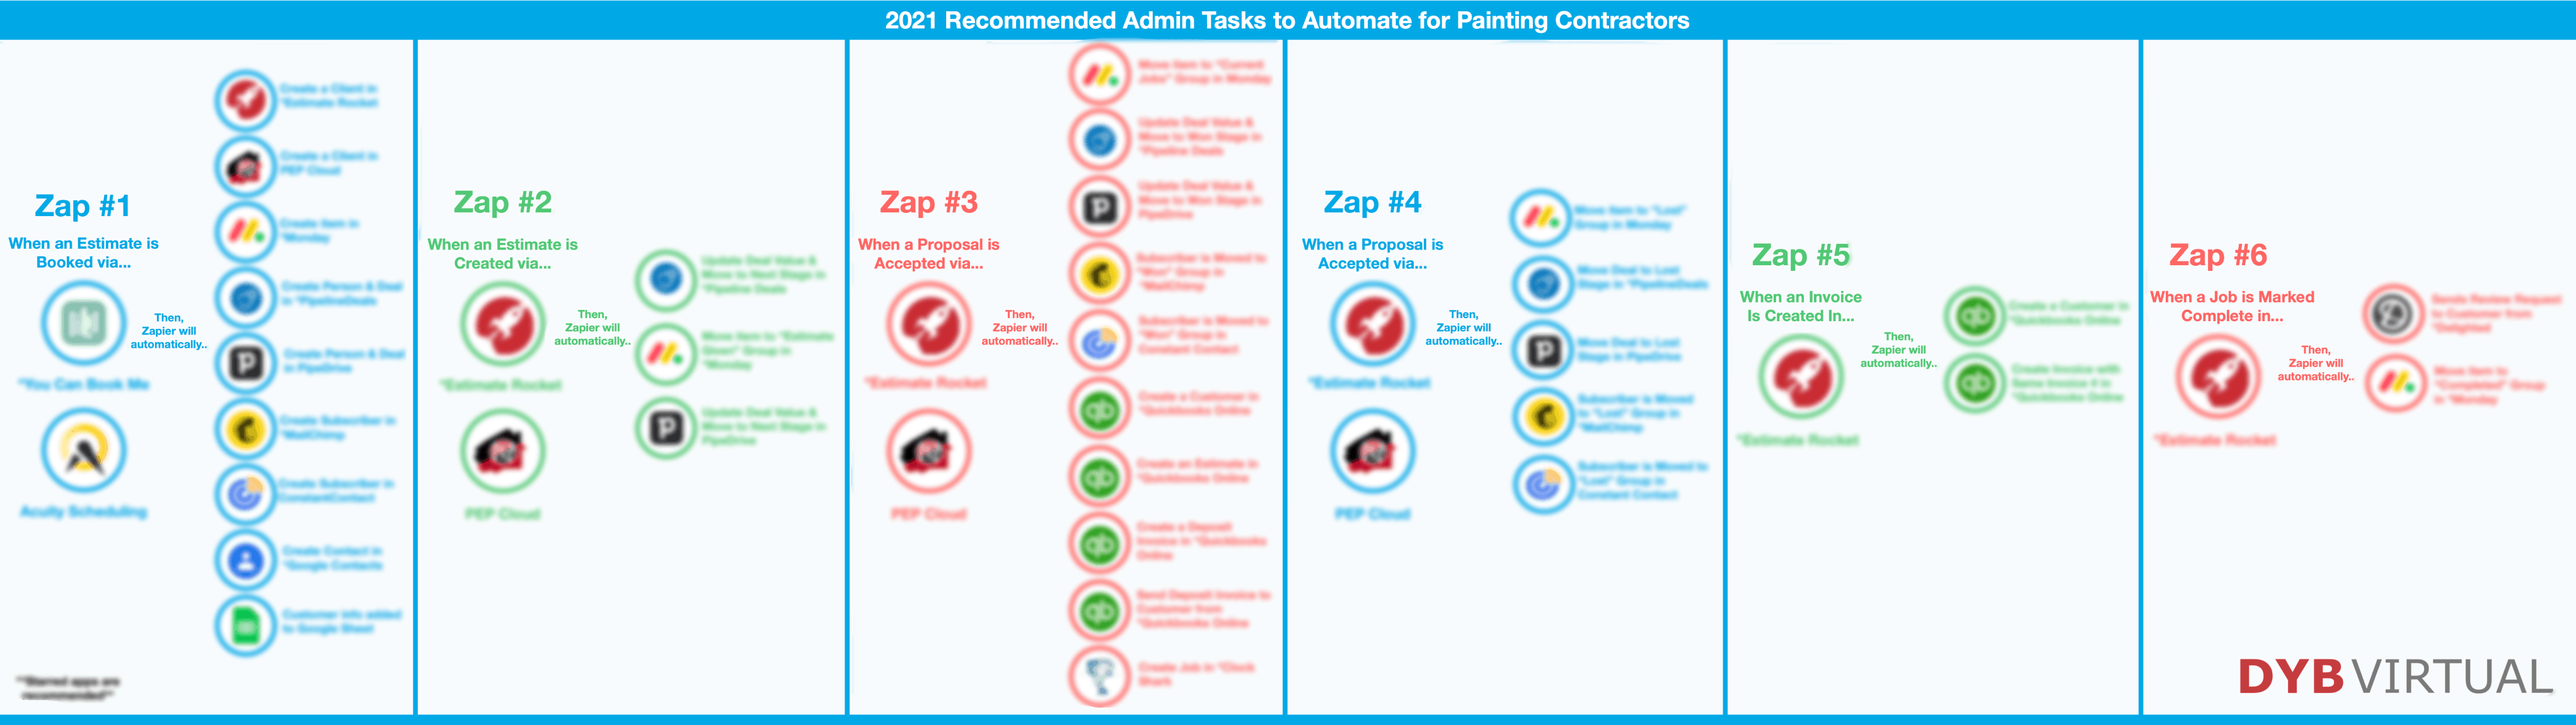 Blur 2021 Recommended Admin Tasks to Automate for Painting Contractors